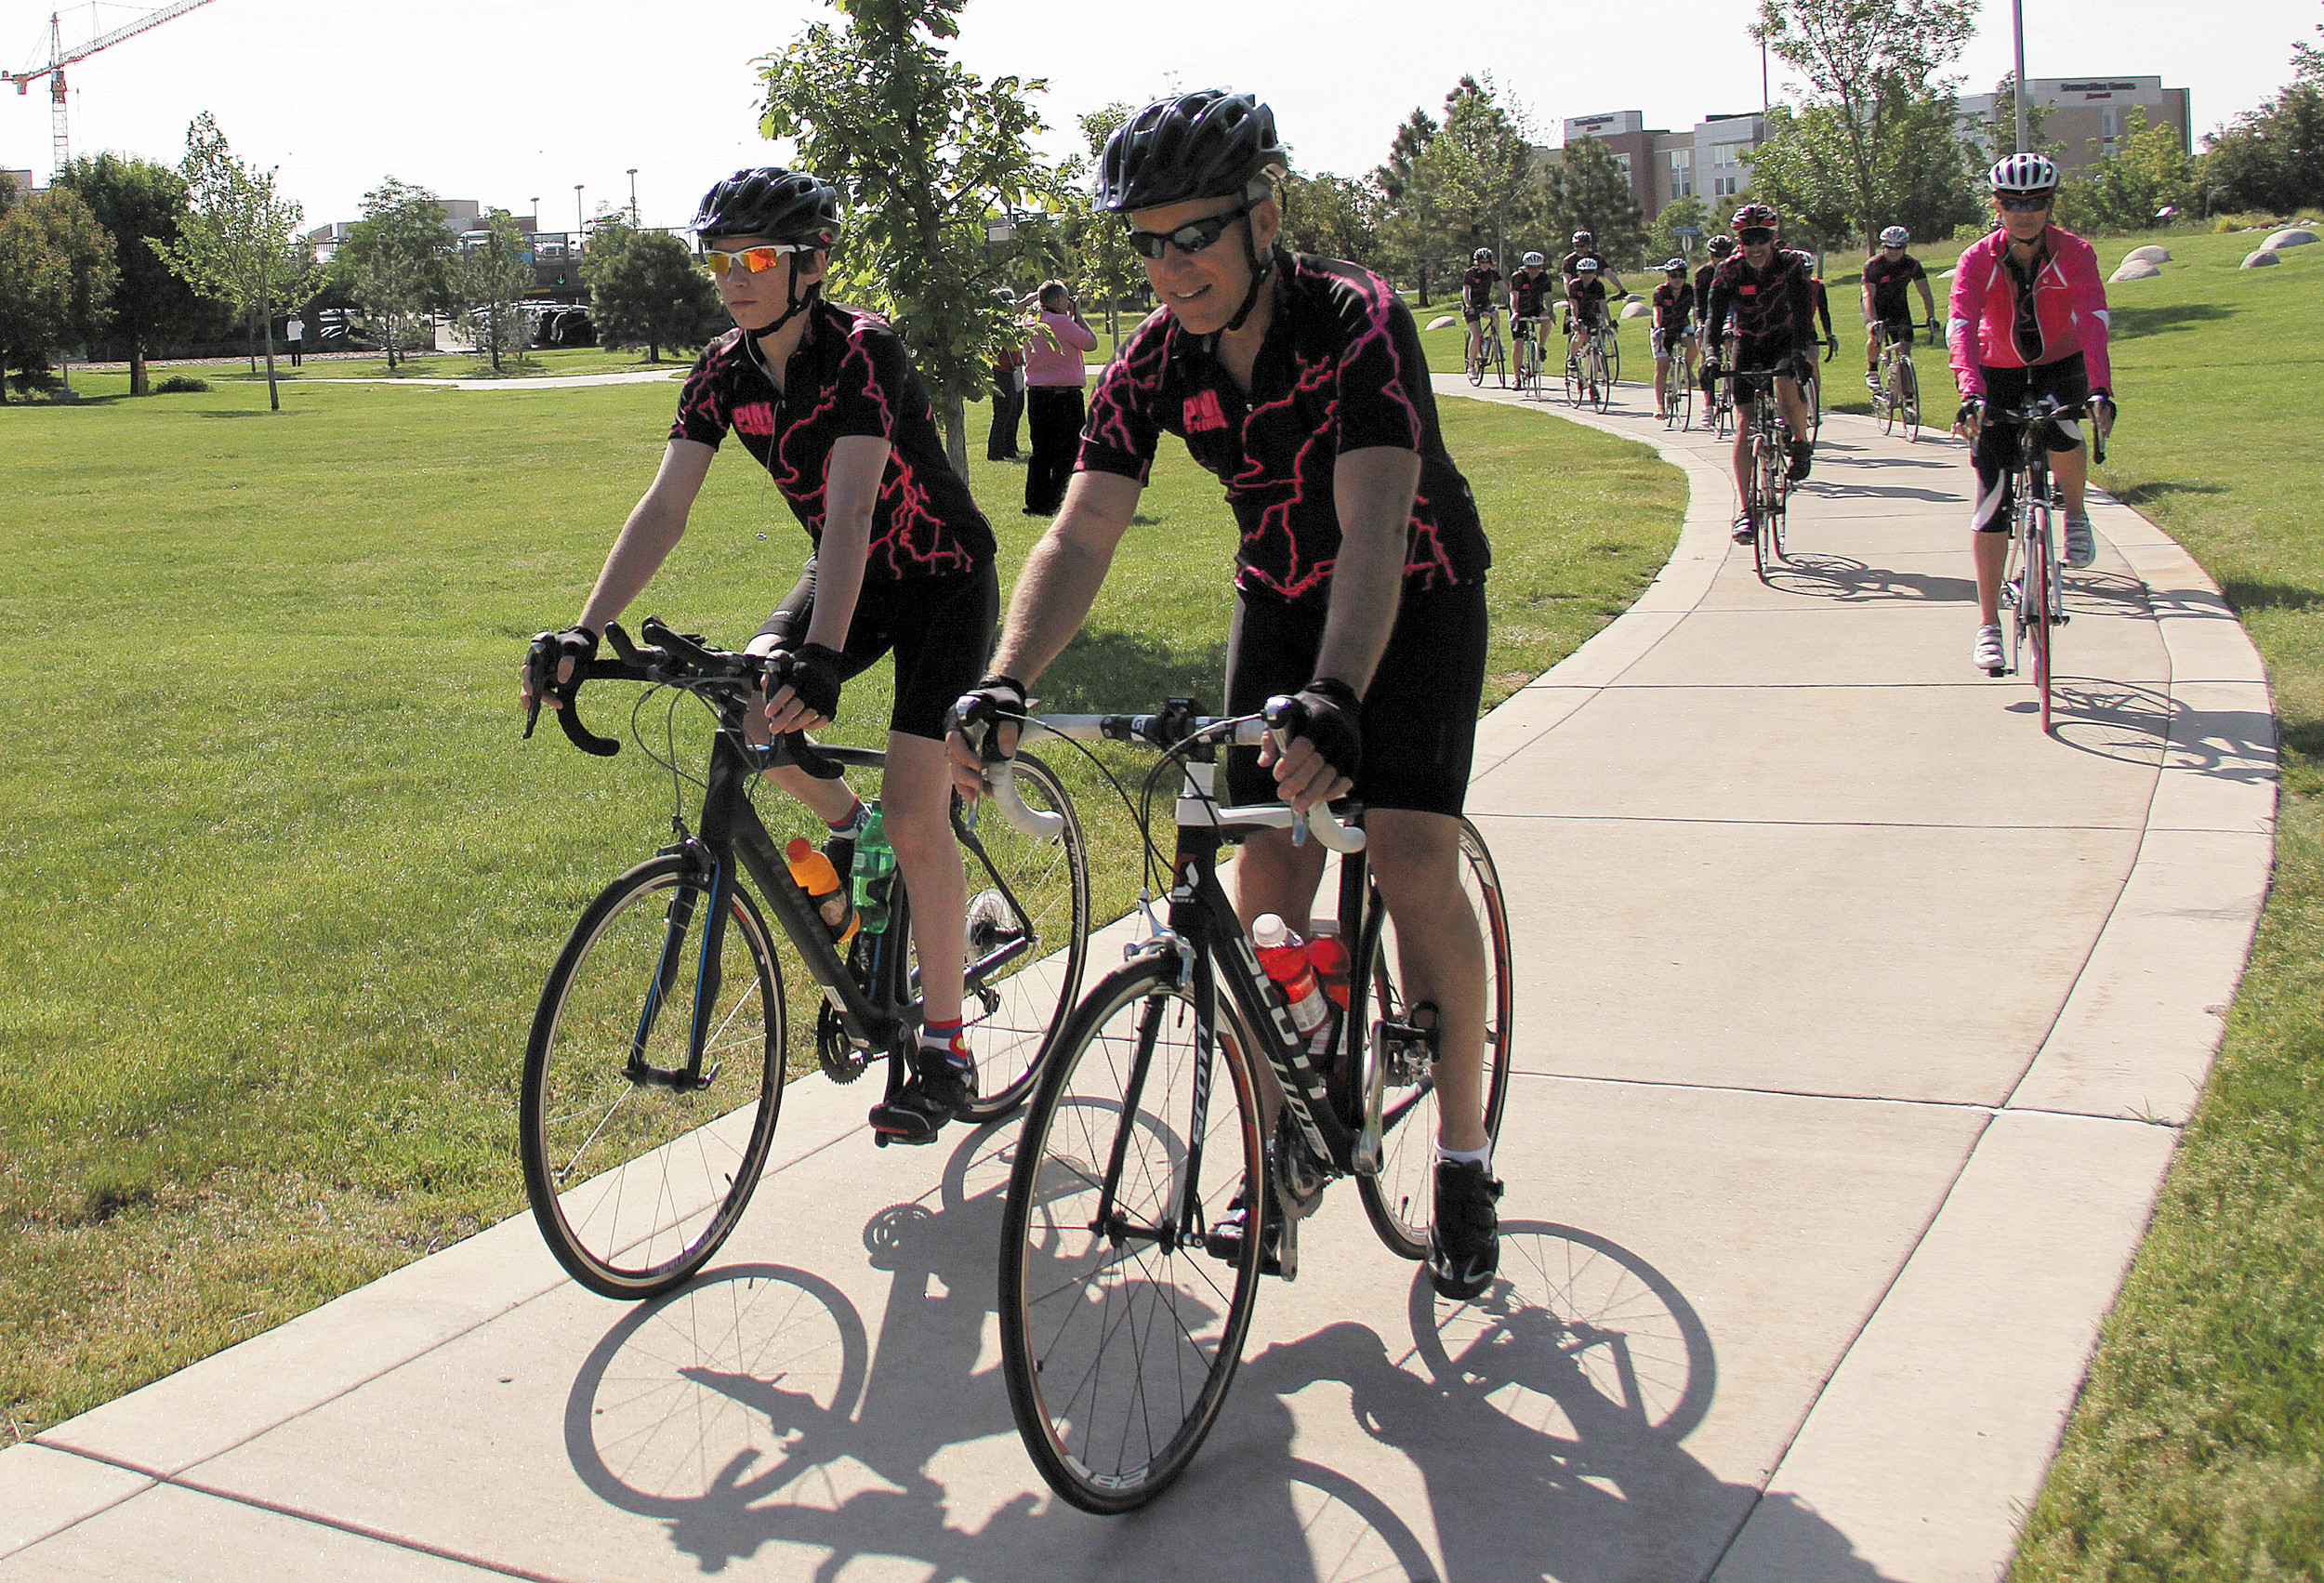 Bryan Warnecke, 15 of Castle Rock, and his father, Steve, lead the pack as the two hosted the Pink Lightning Tour to raise money and awareness for cystic fibrosis Saturday June 7.The 29.76 mile ride stretched from Children's Colorado's main campus at the Anschutz Medical Campus in Aurora to Children's Colorado's North Campus in Broomfield.